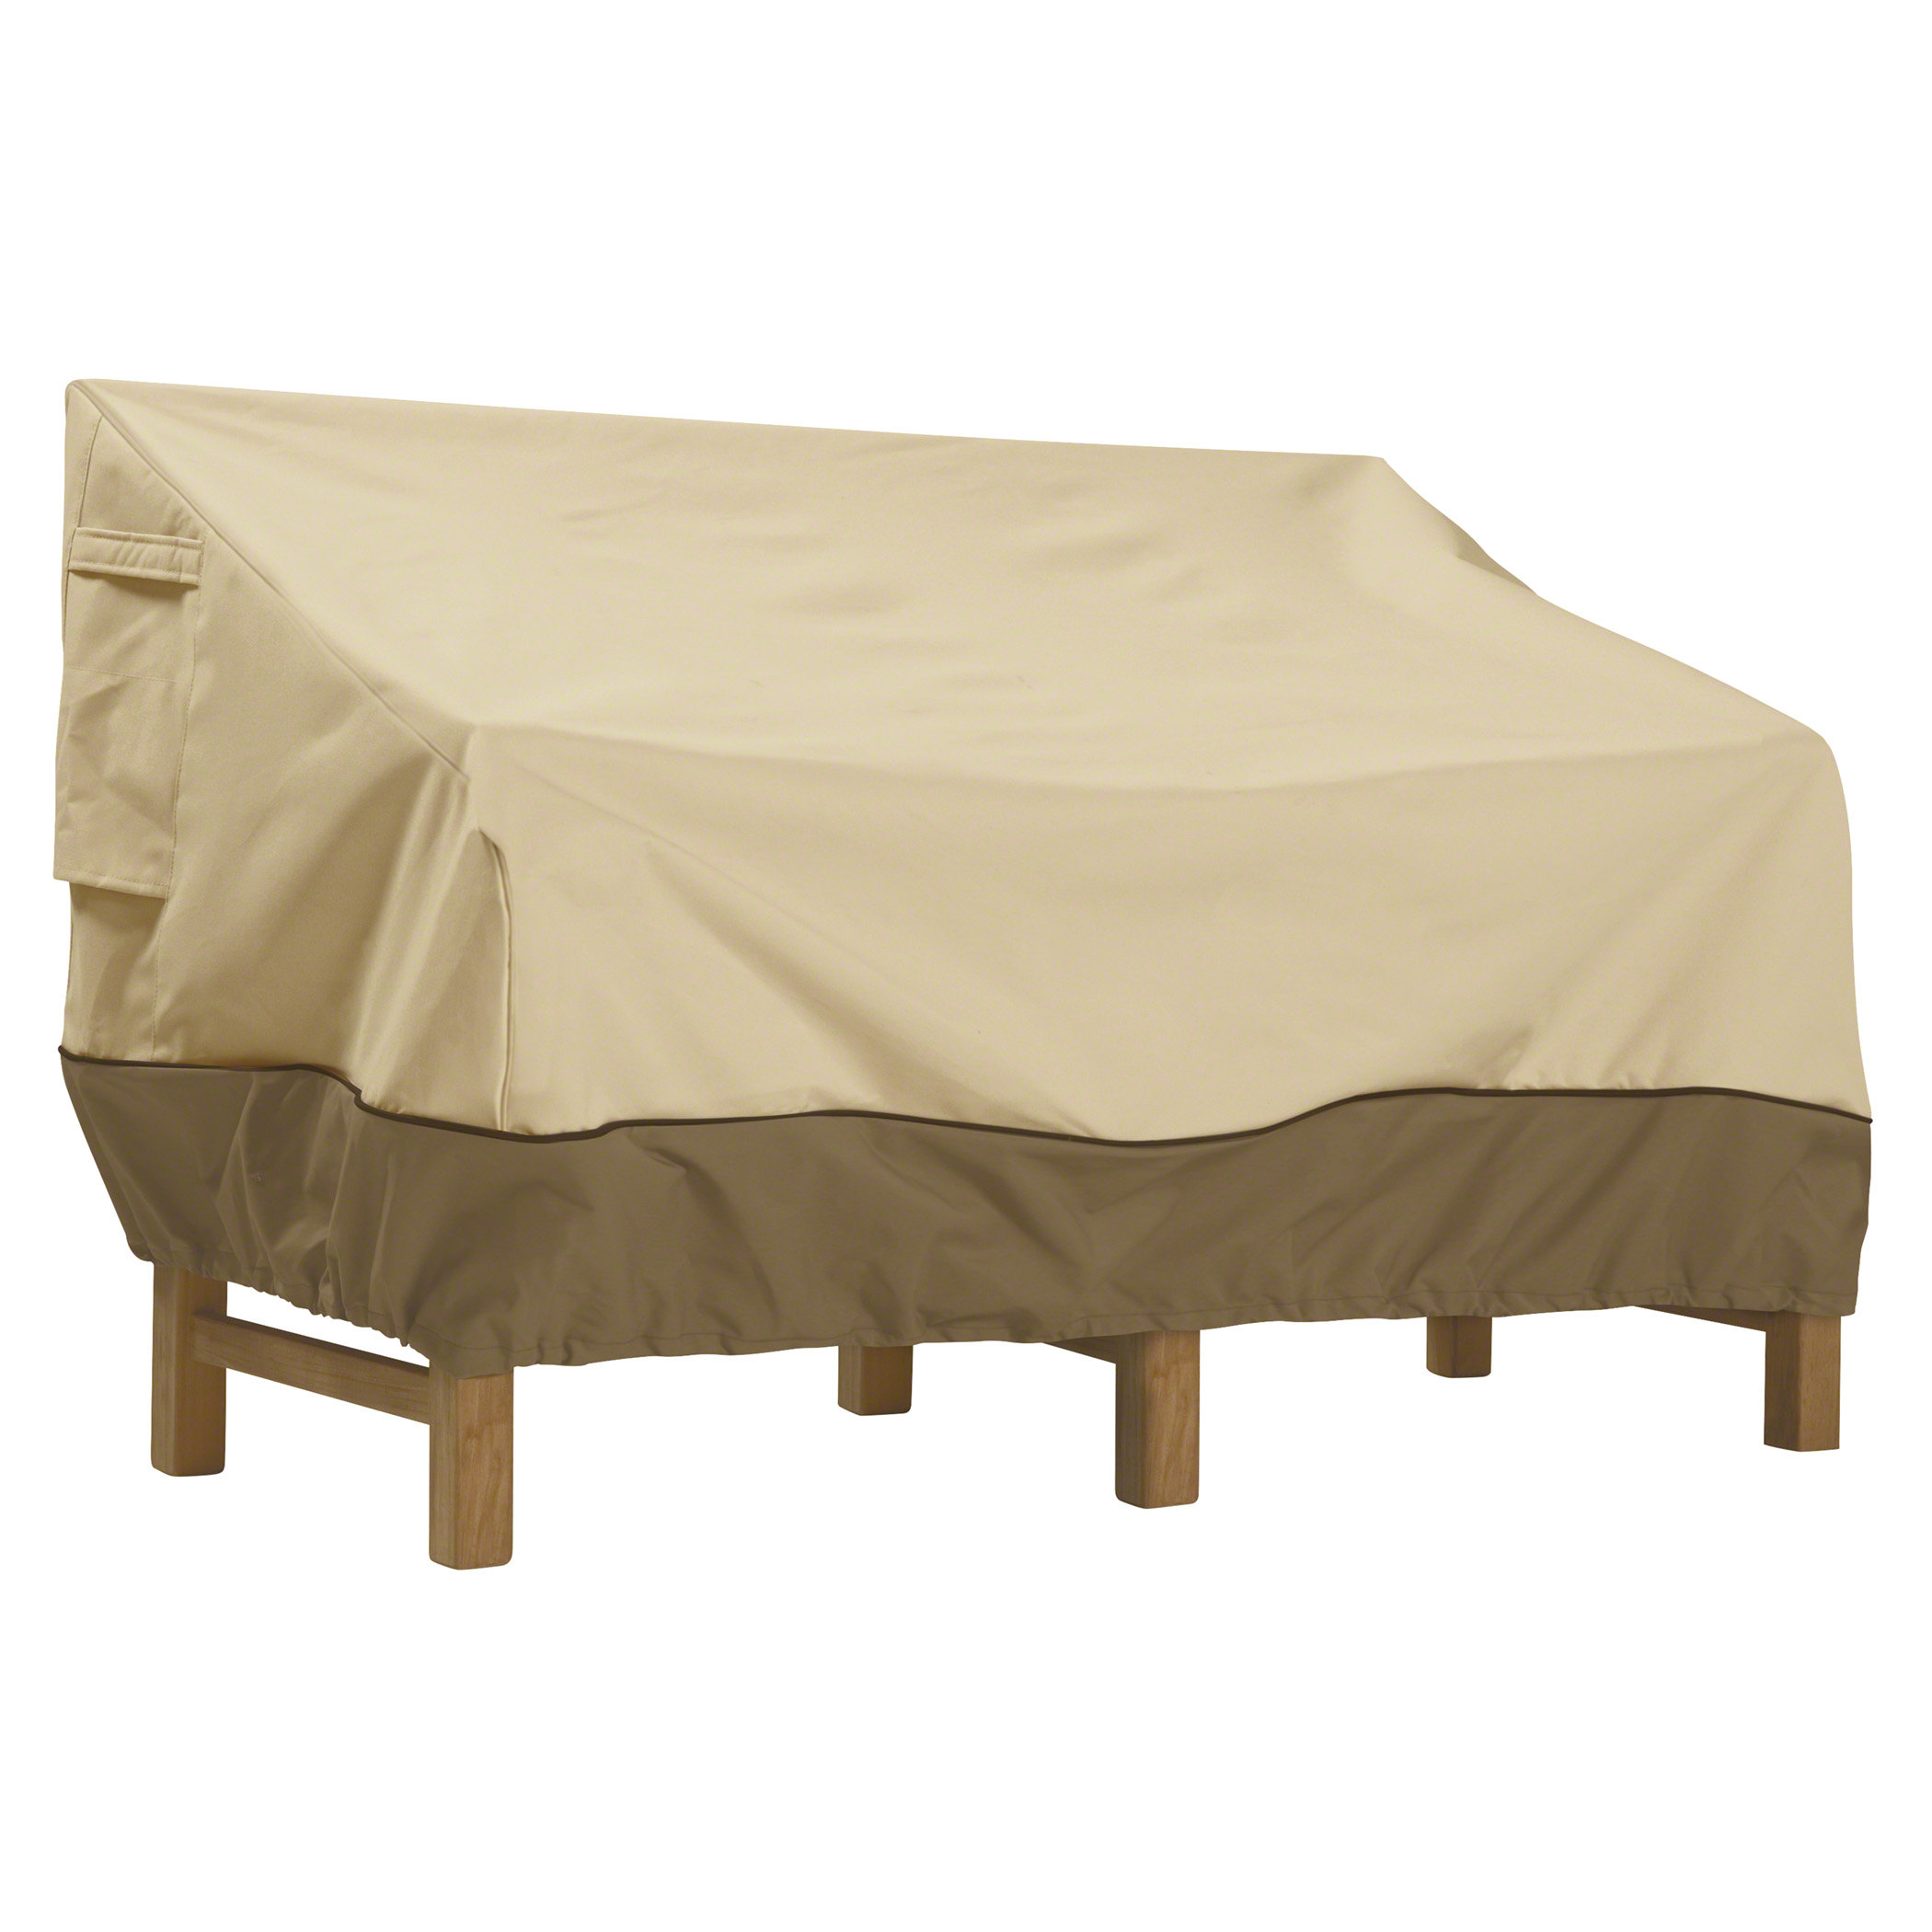 Classic Accessories 55 226 051501 00 Veranda Patio Sofa Cover X Large Patio